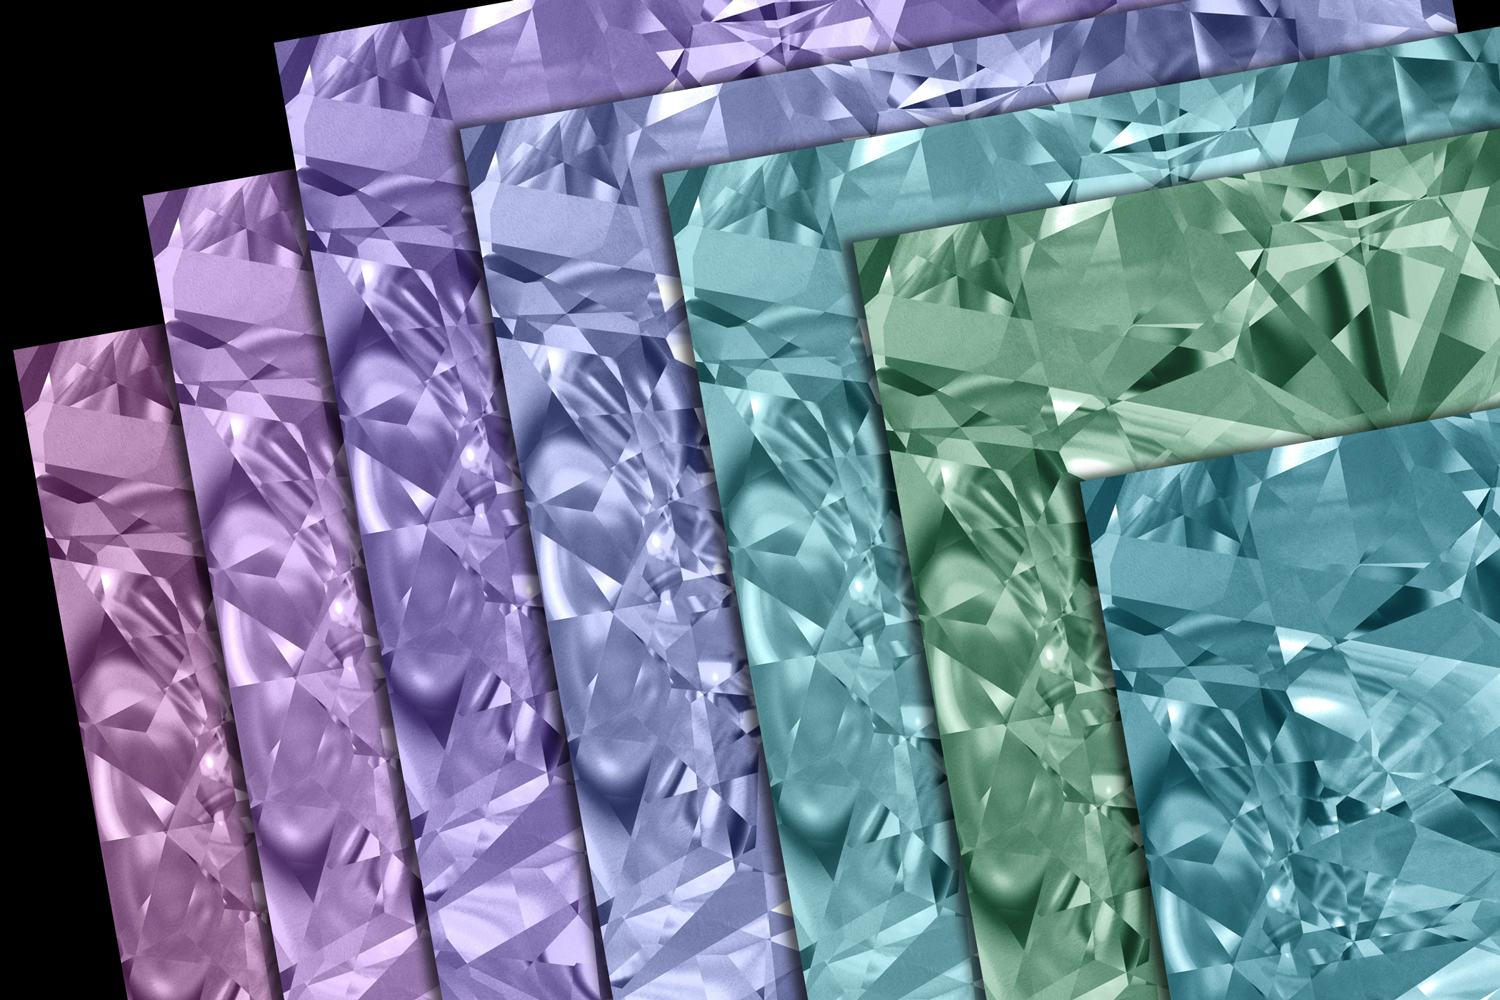 Gemstone Textures Pack 2 example image 3